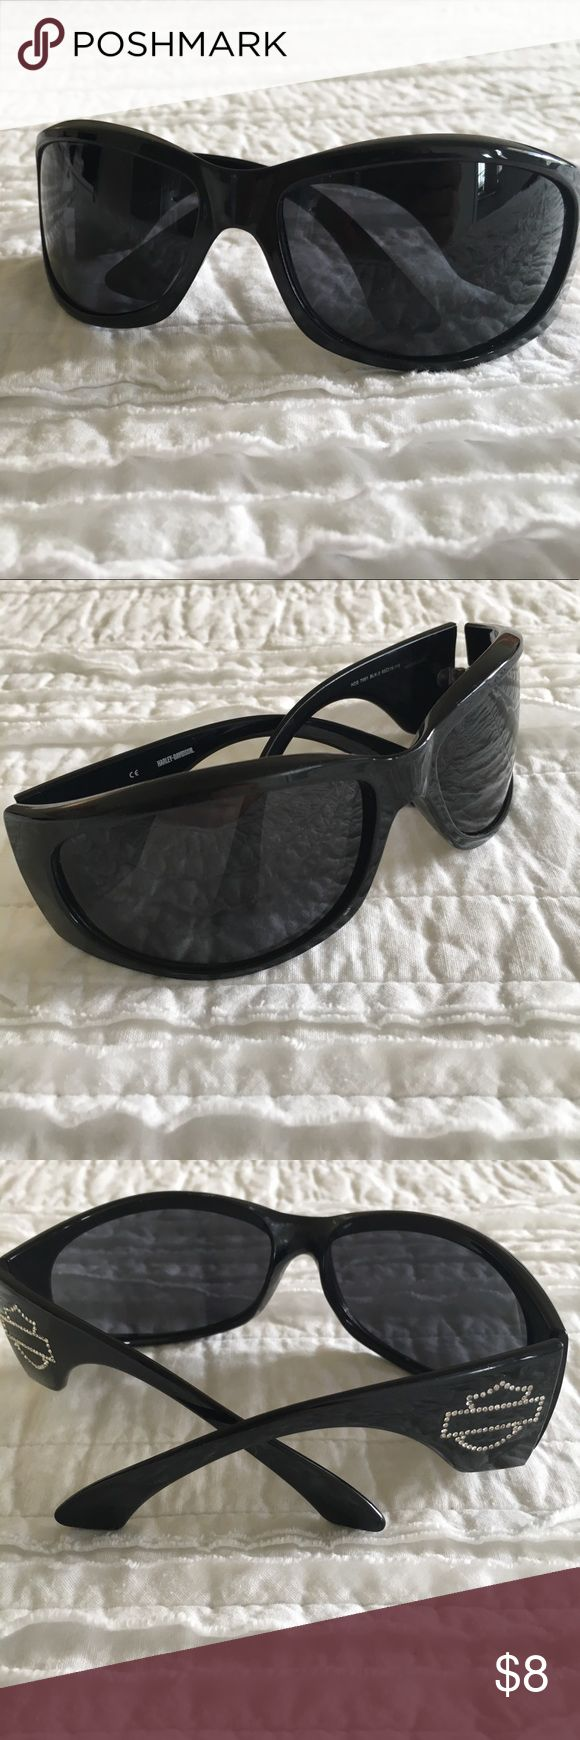 Harley Davidson Sunglasses Cute biker sunglasses with rhinestone bar and shield. Small scuff on one of the lenses. Barely noticeable. Great as a backup pair of sunglasses. Comes from a smoke free home. No dust bag or case. Harley-Davidson Accessories Glasses